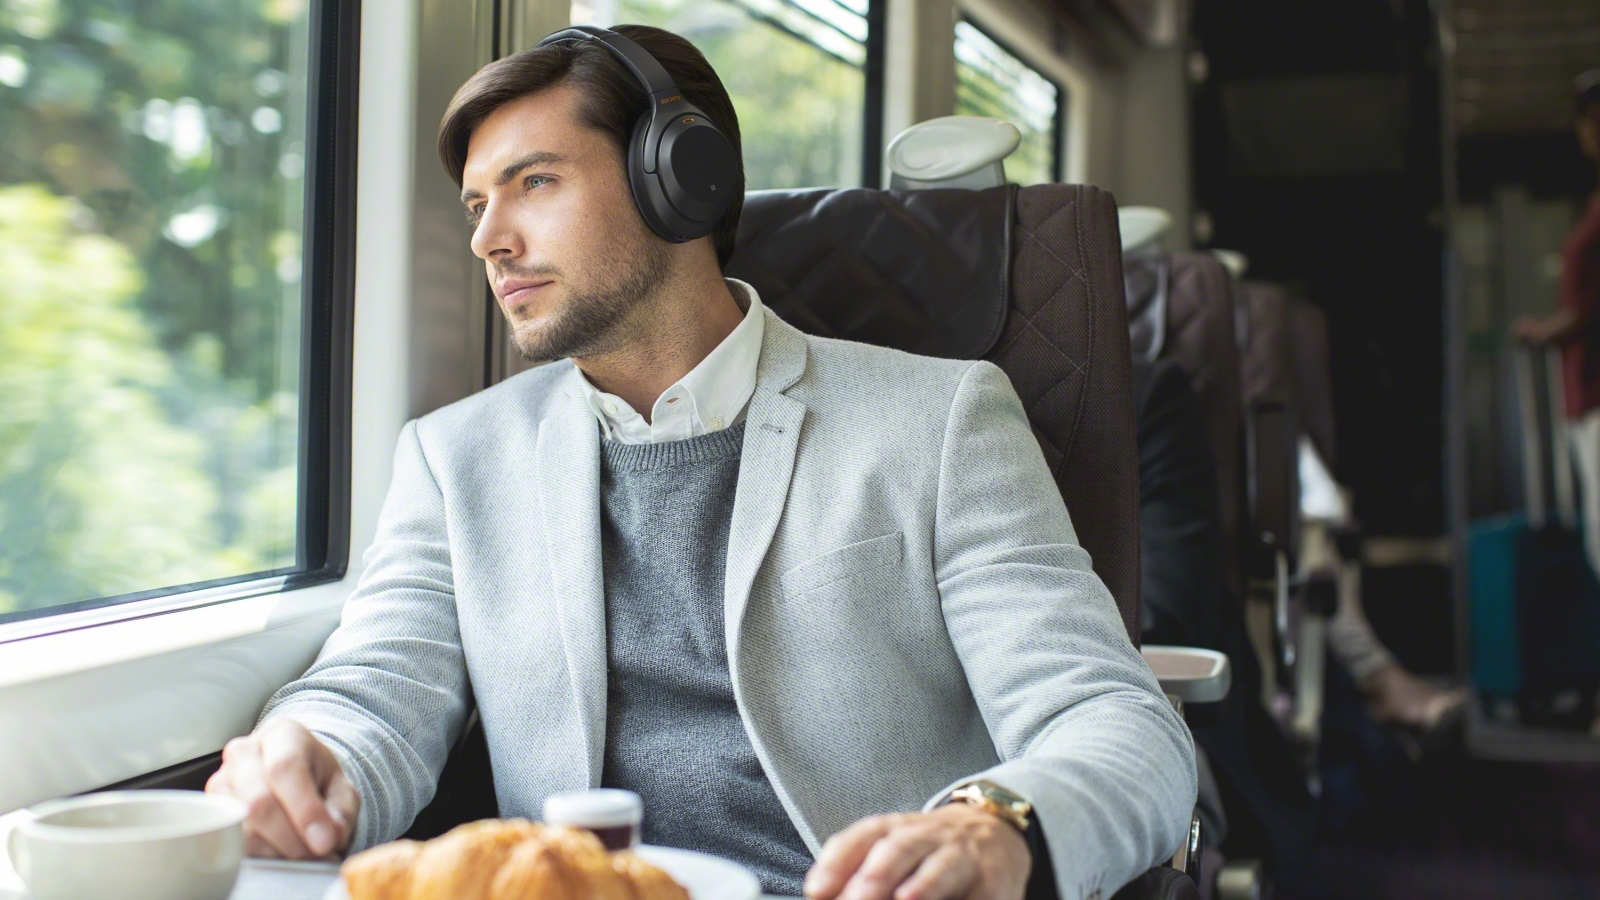 Sony WH-1000XM3 Wireless Noise Cancelling Headphones